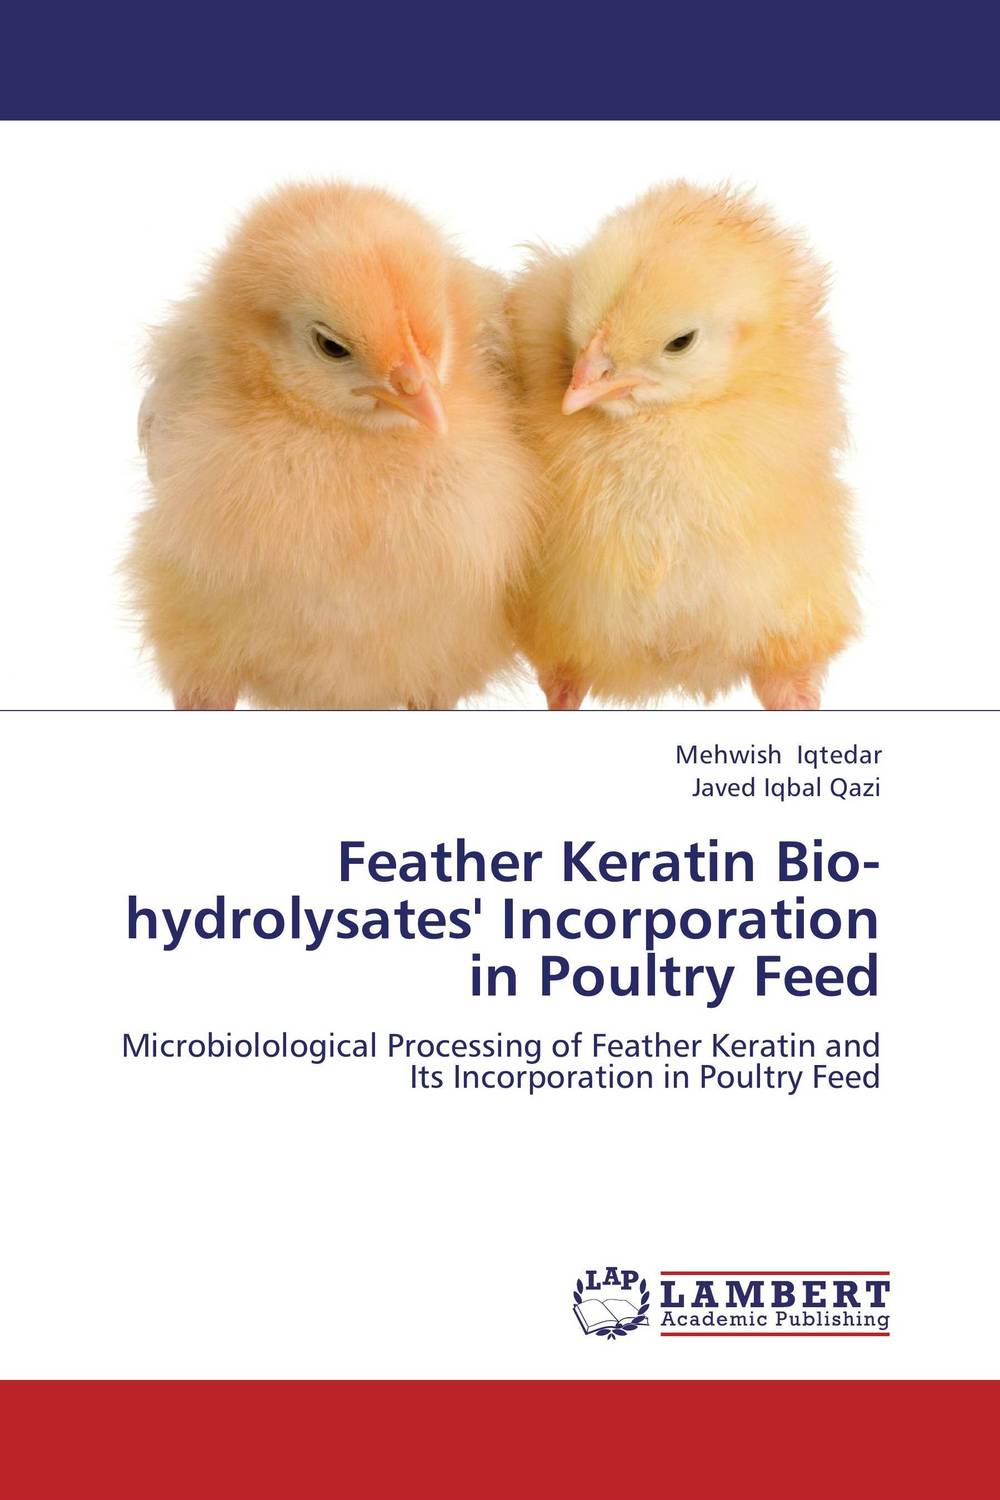 Feather Keratin Bio-hydrolysates' Incorporation in Poultry Feed evaluation of aqueous solubility of hydroxamic acids by pls modelling